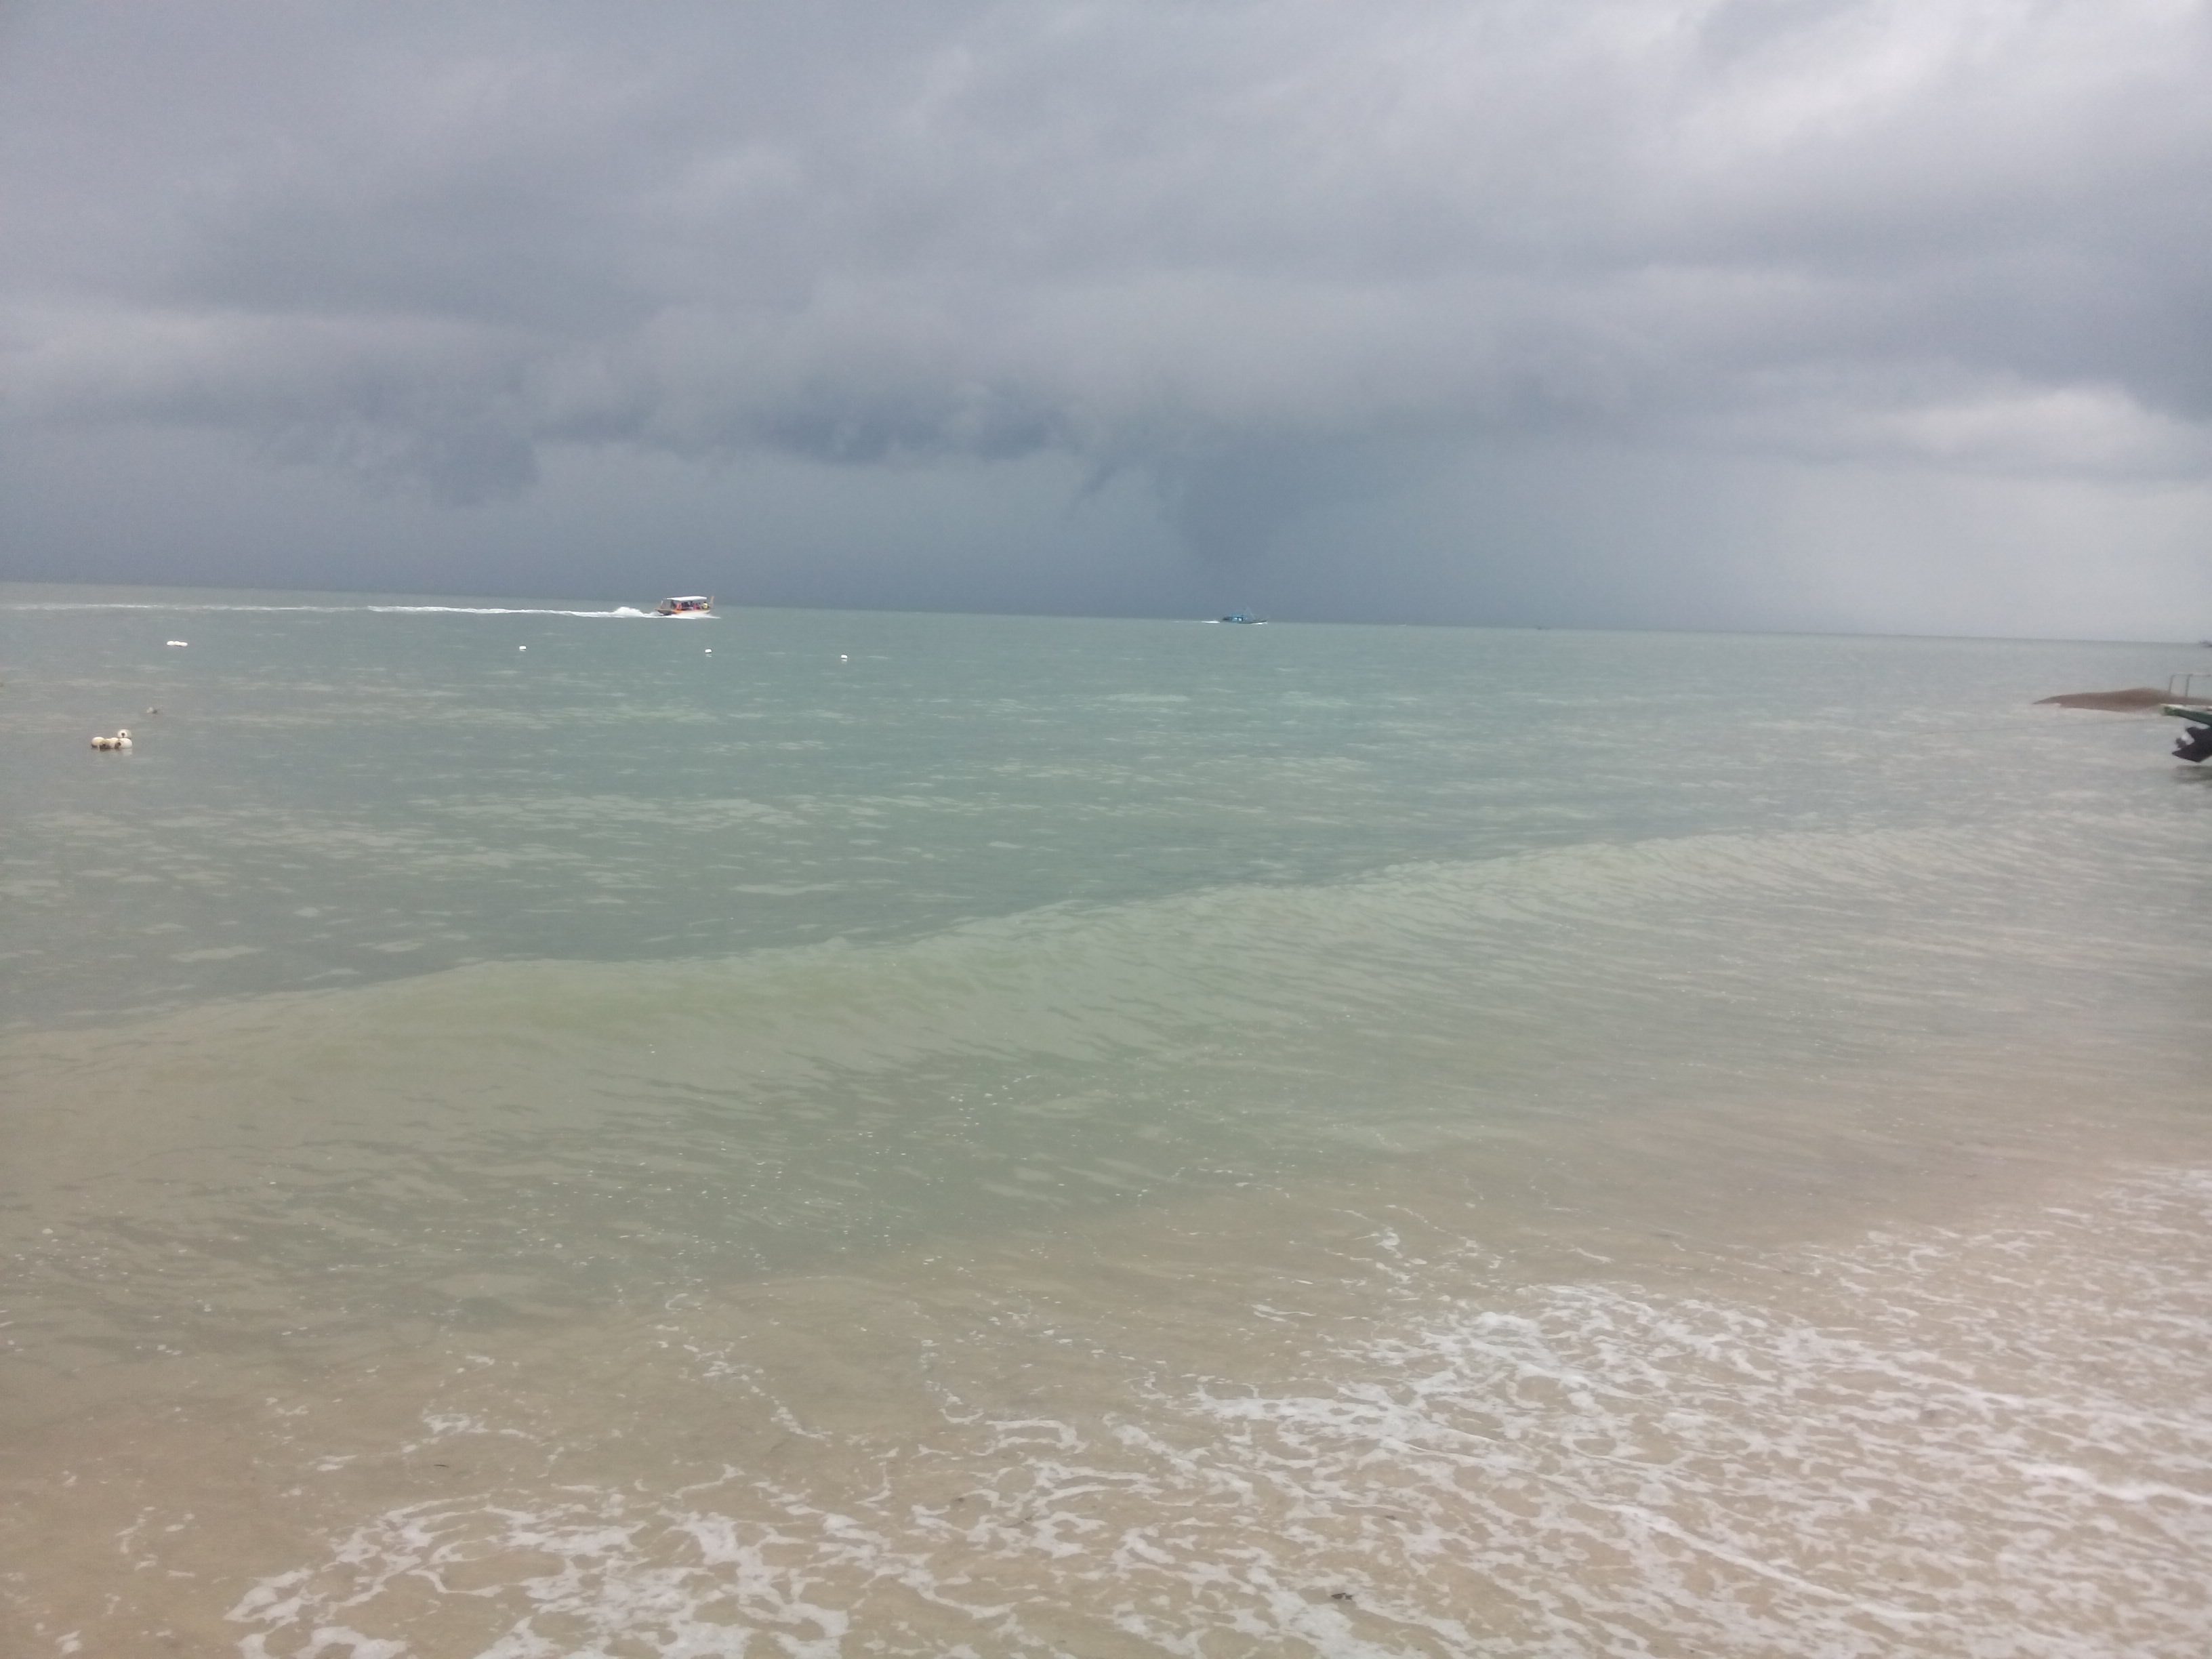 The sea with dark storm clouds in the distance